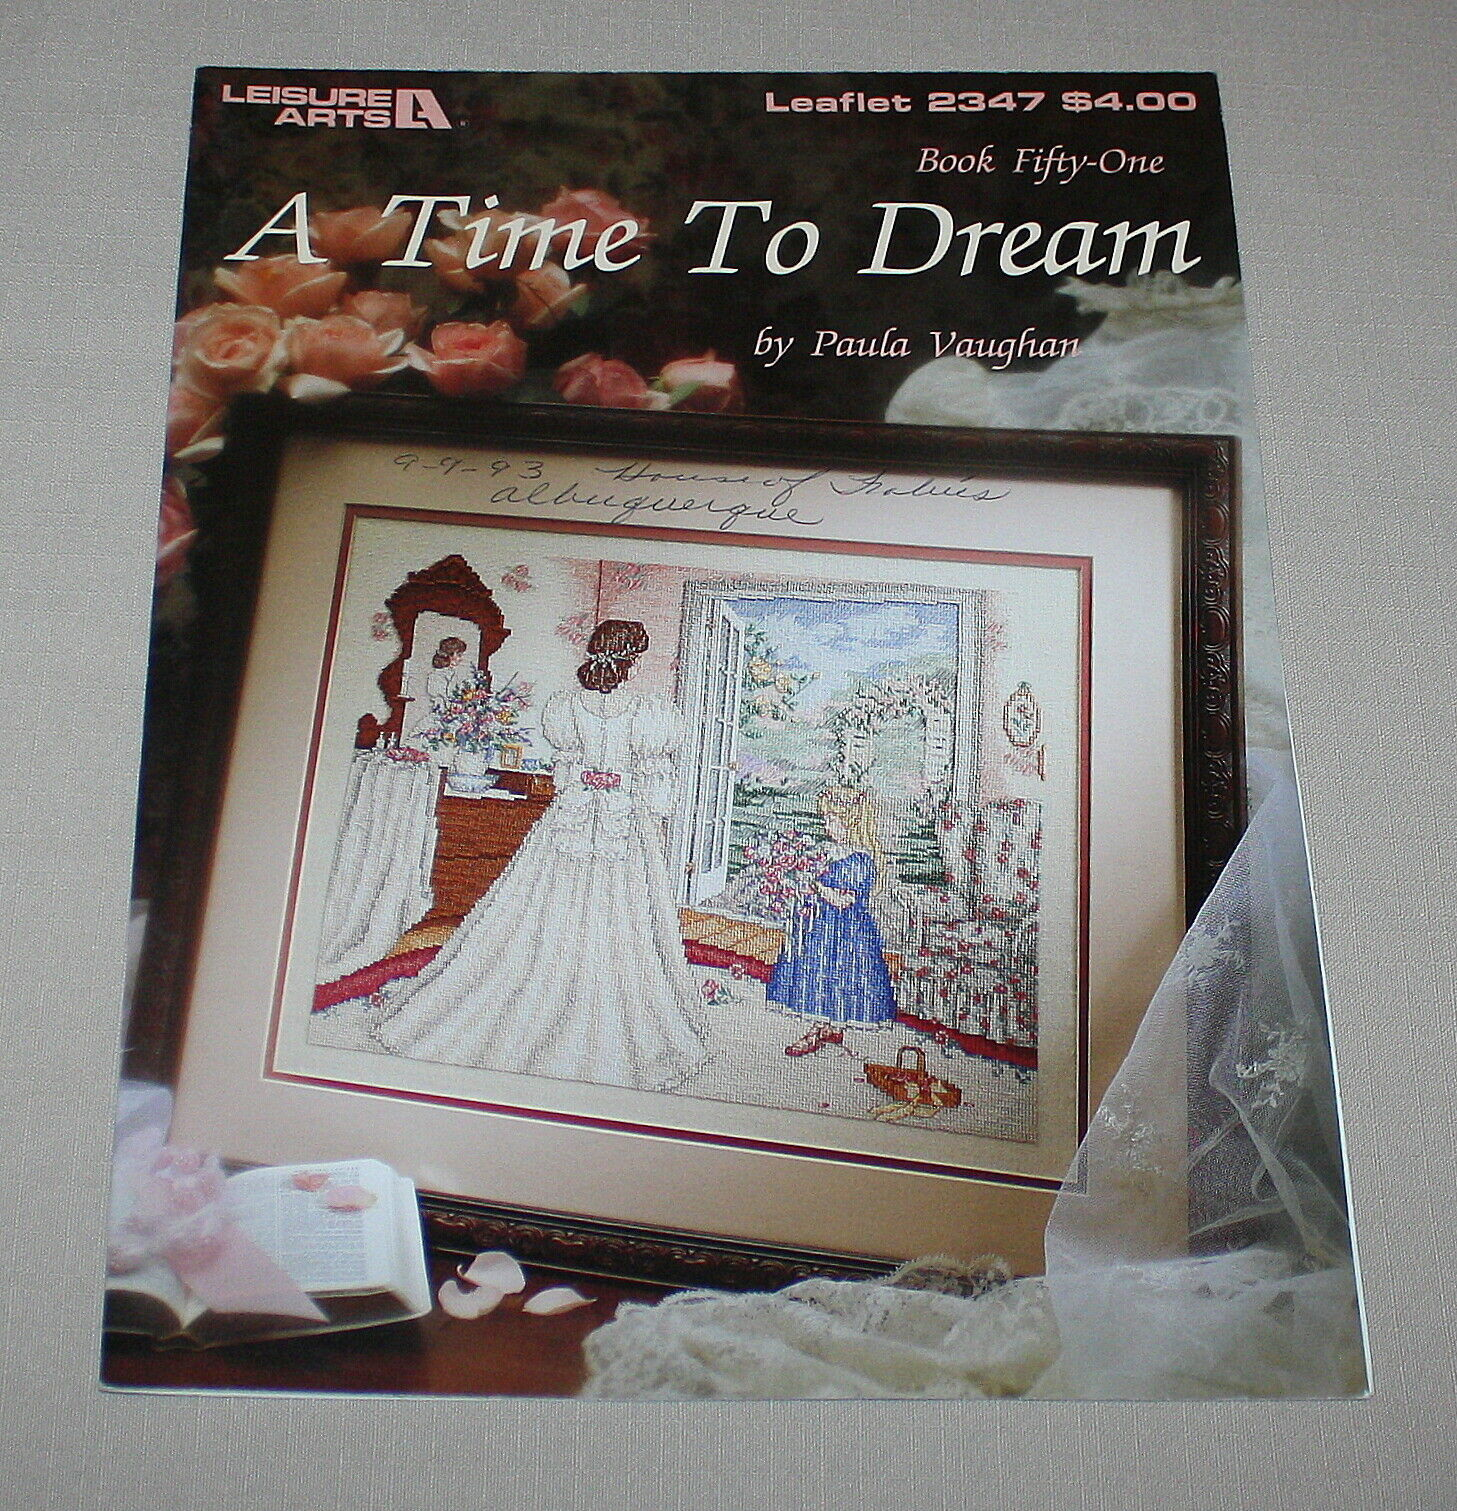 A Time to Dream Leisure Arts 2347 Cross Stitch Pattern Book 51 Paula Vaughan